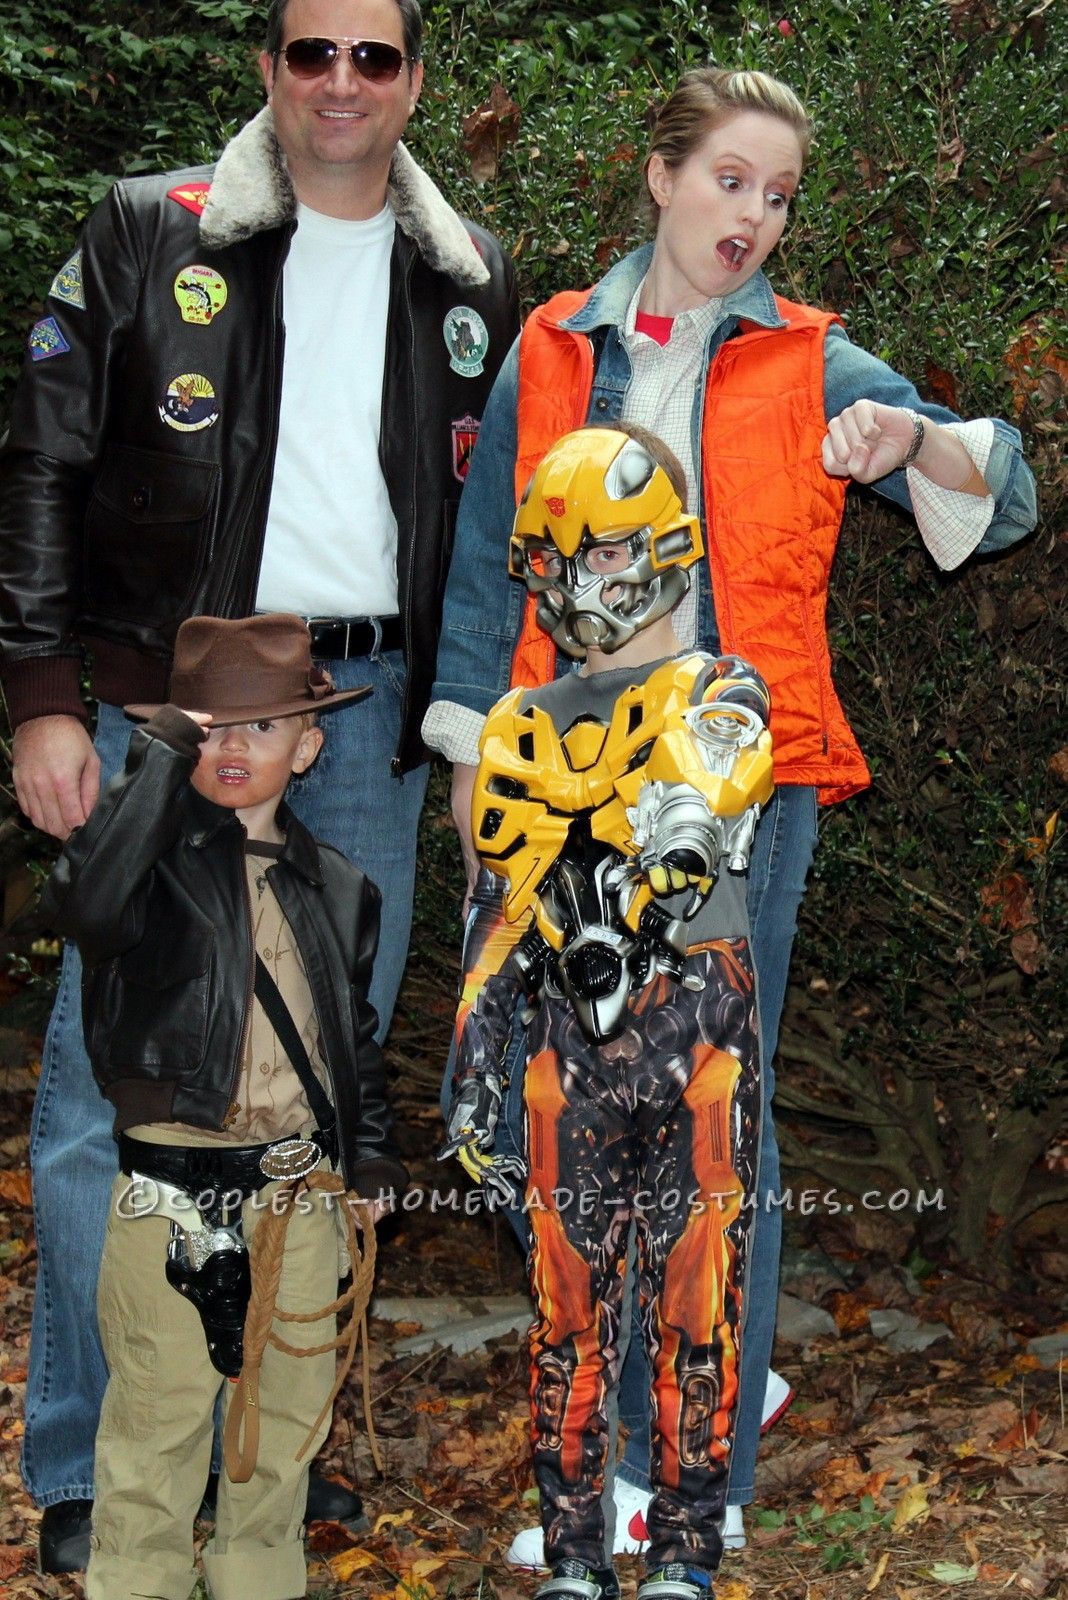 coolest homemade family costume 1980's movie characters | coolest